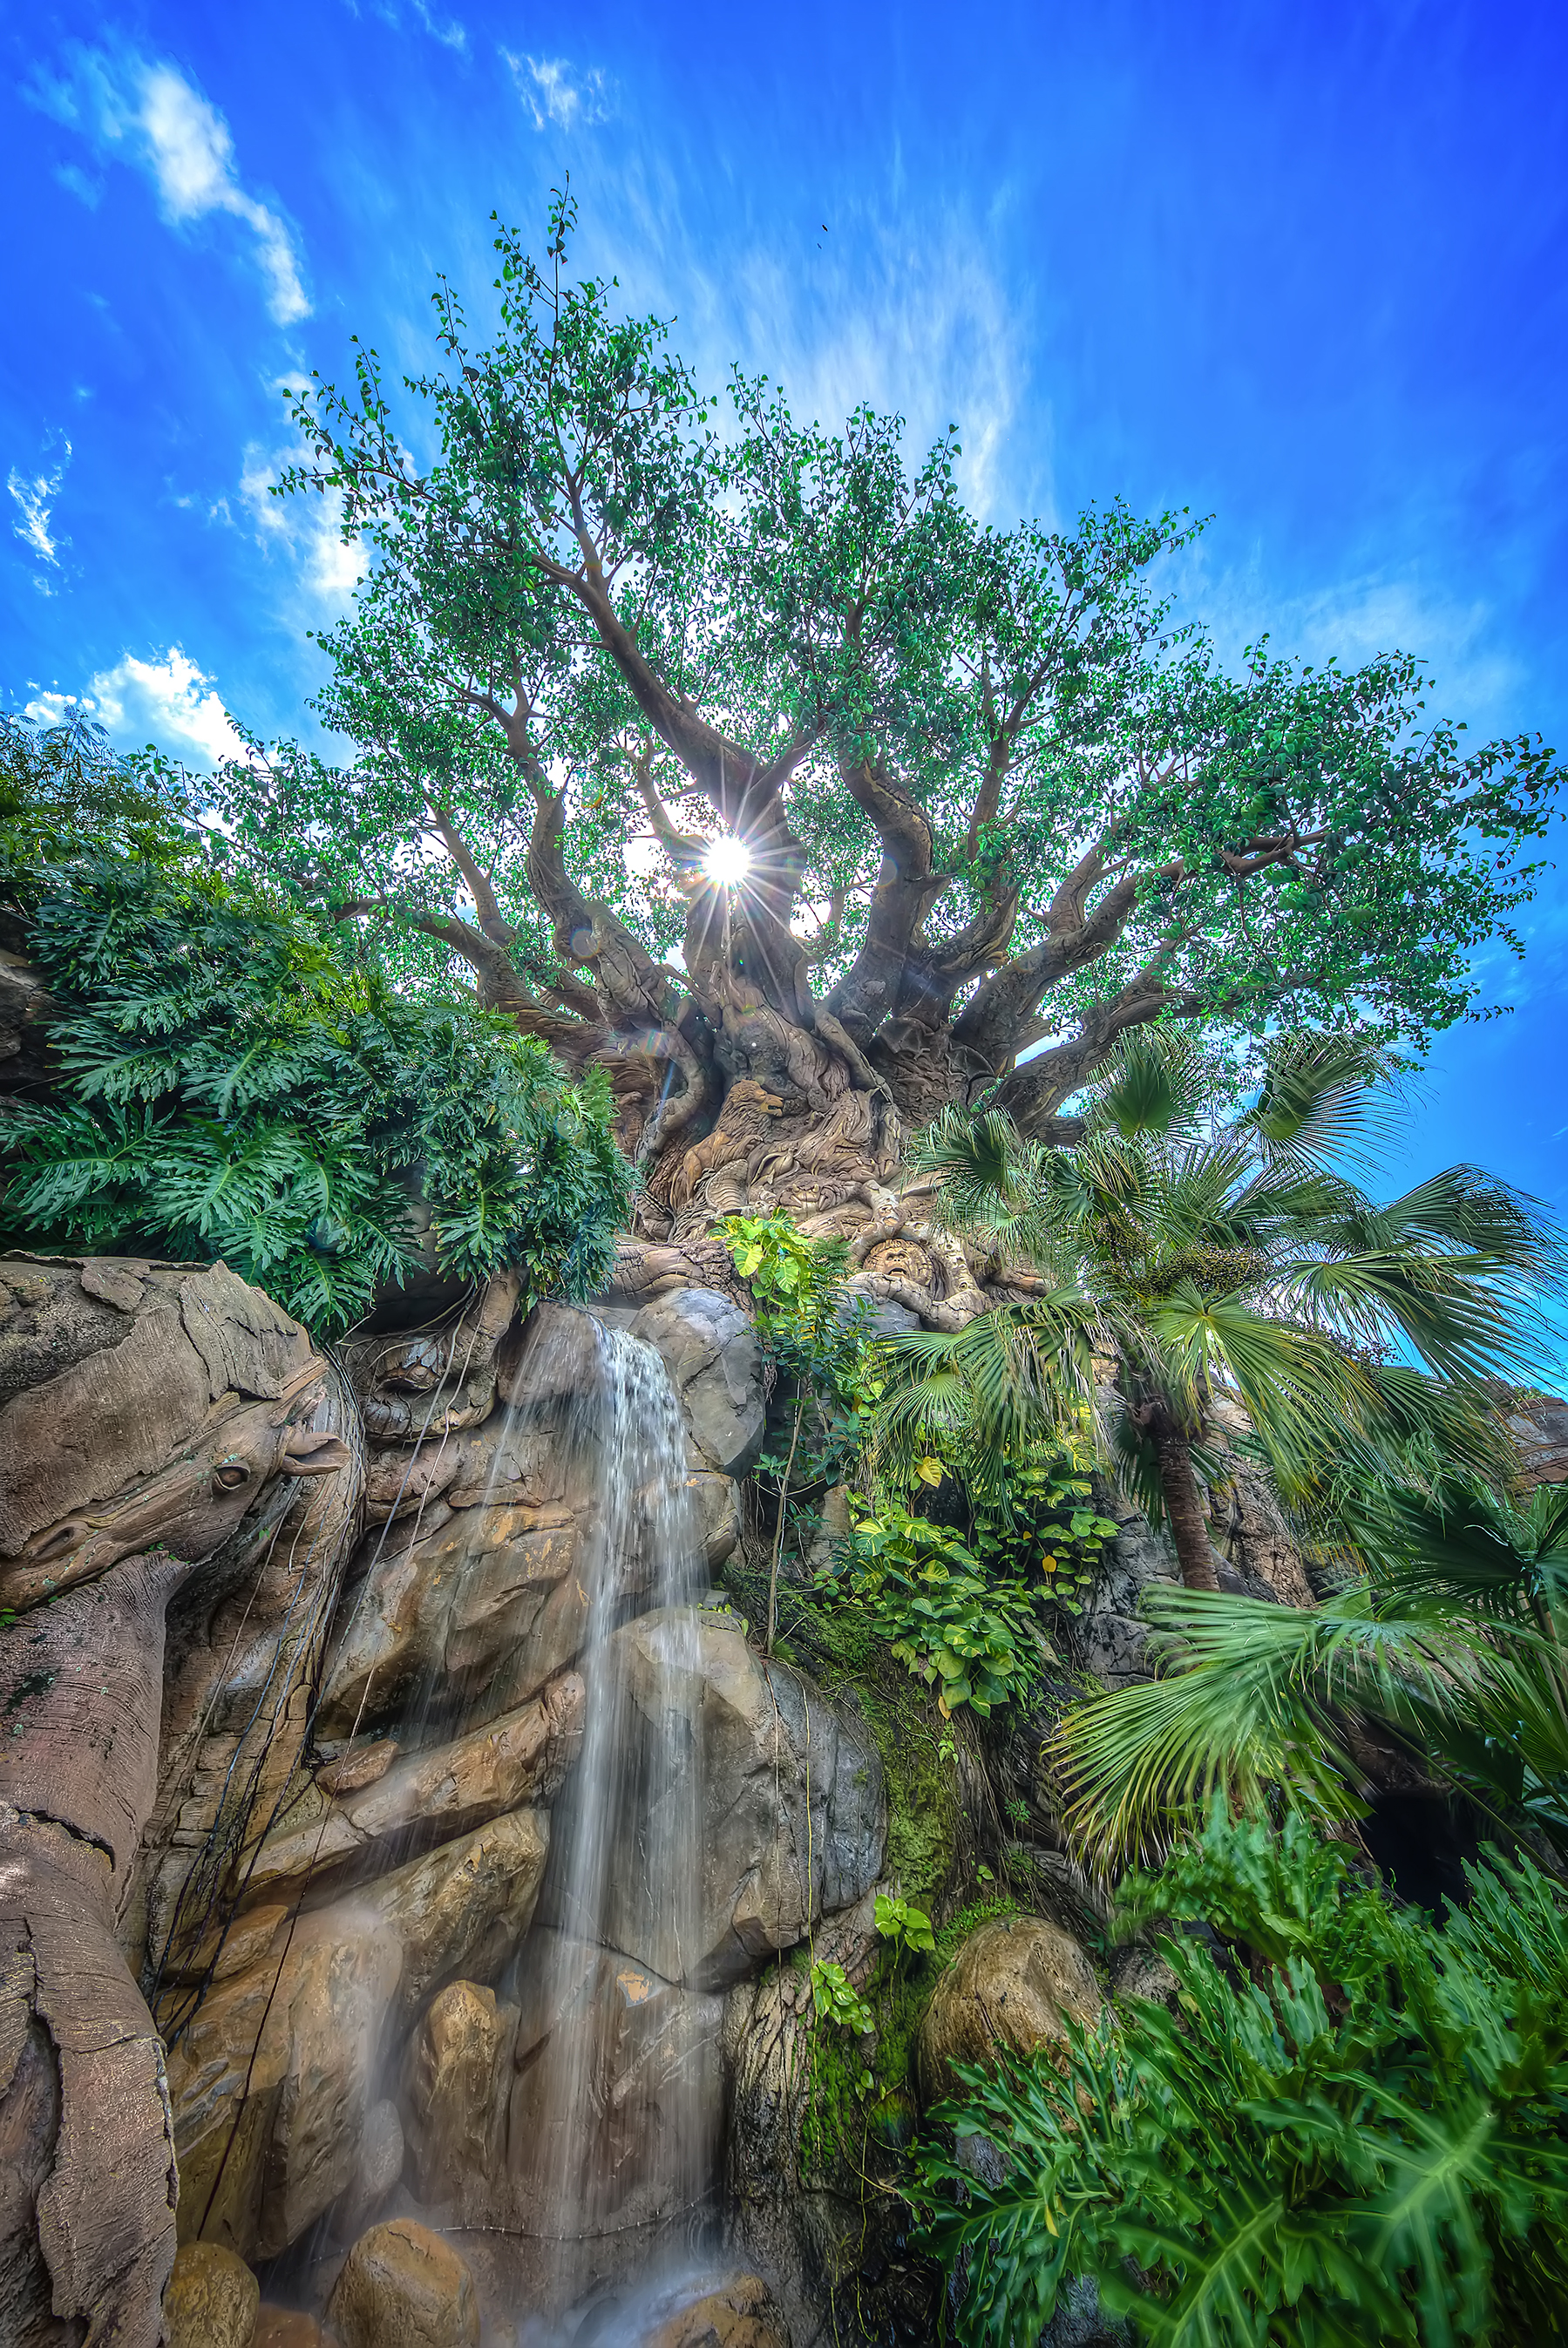 The Best Animal Kingdom Pictures